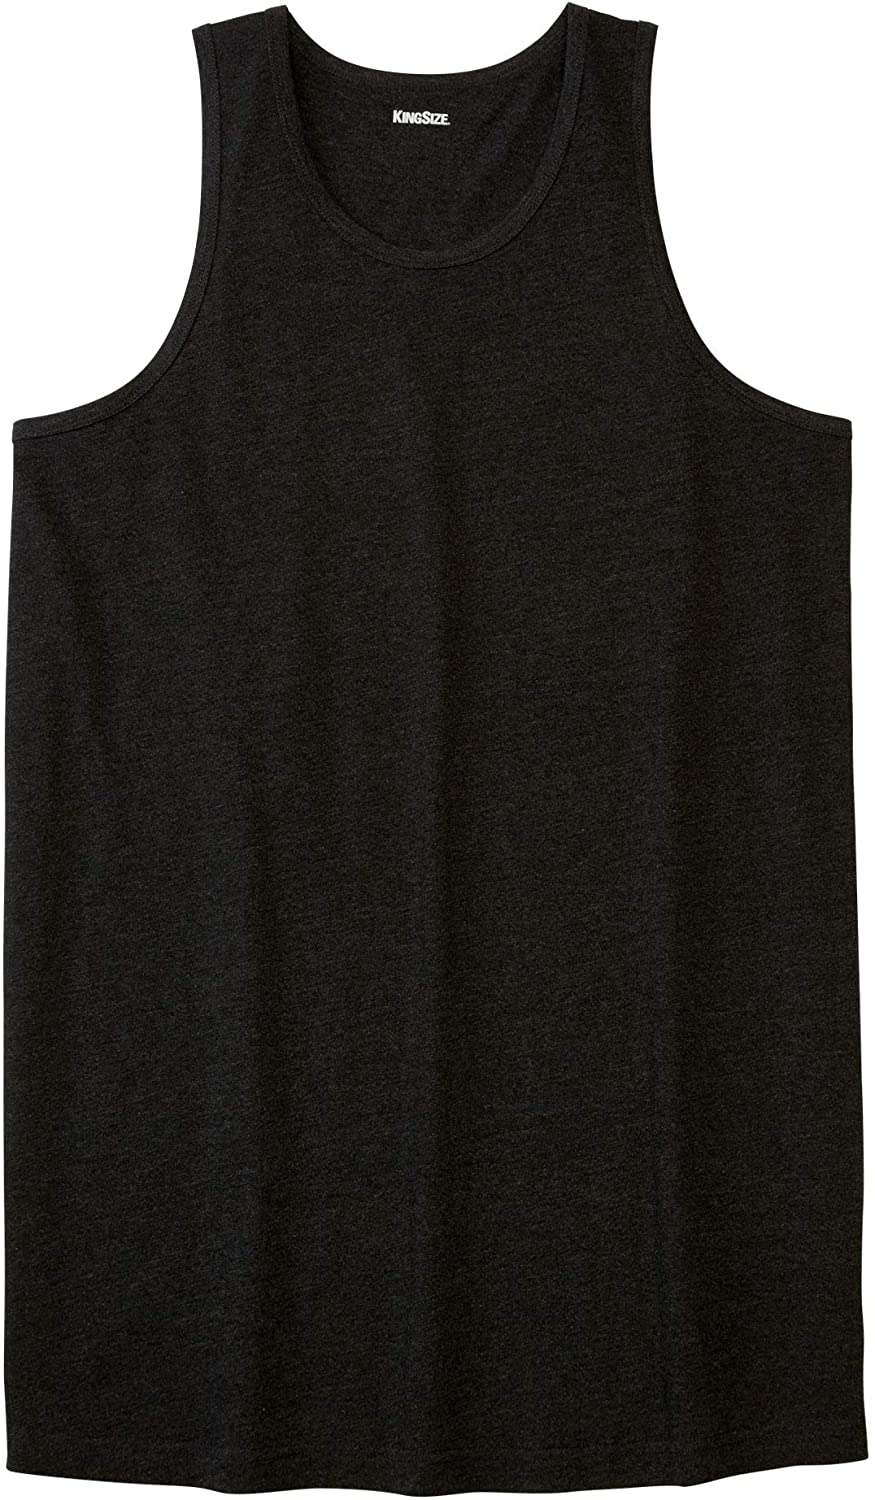 Big KingSize Mens Big /& Tall Longer-Length Shrink-Less Lightweight Tank 5XL Heather Charcoal